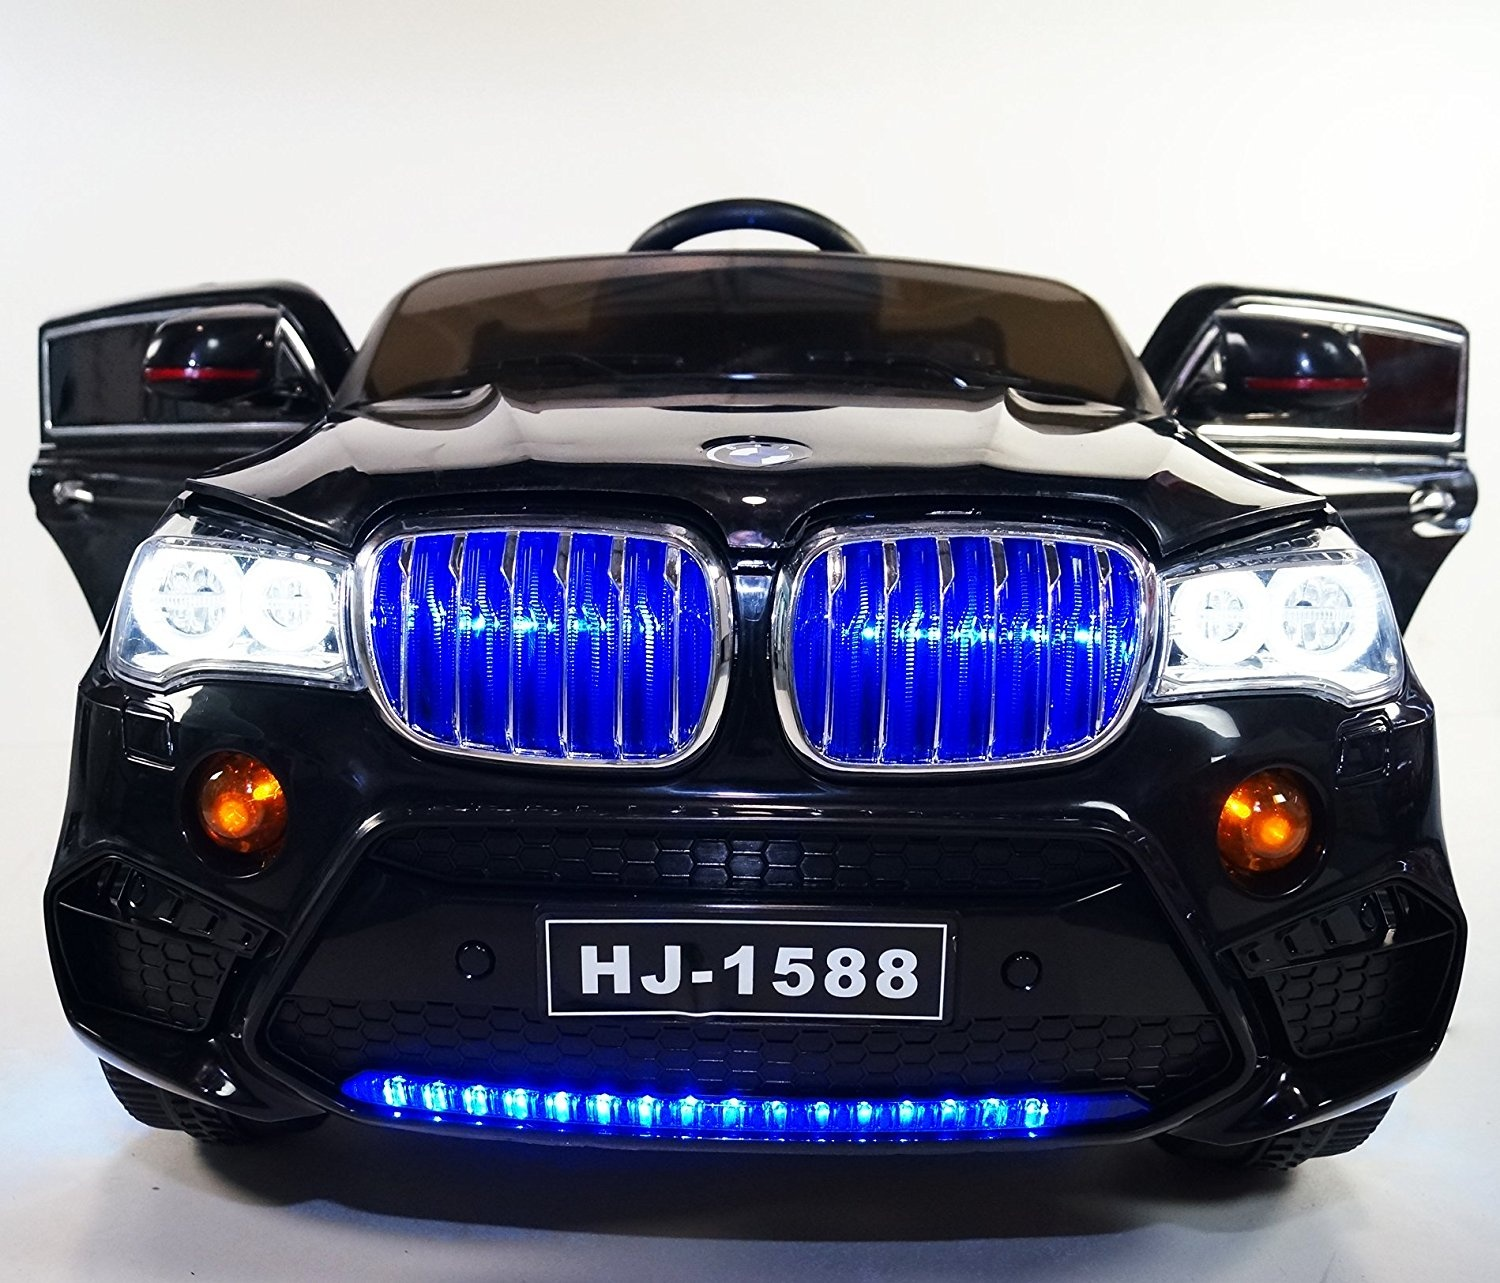 Bmw Ride On Car Bmw X5 Electric Battery Car For Kids 12v Two